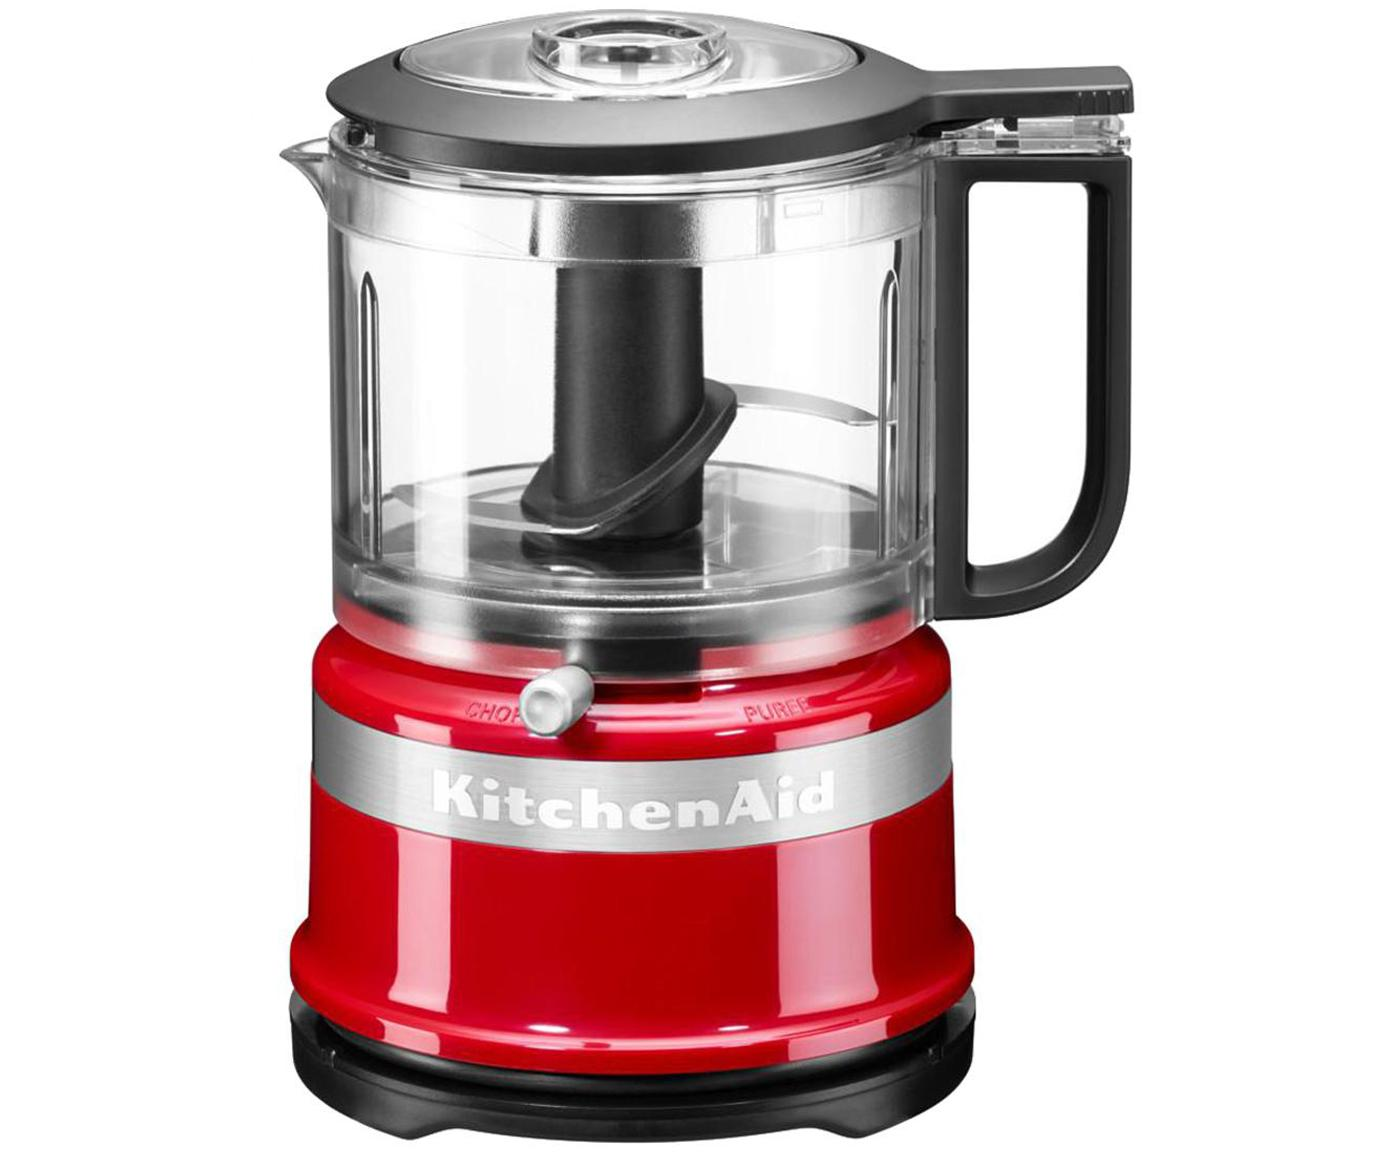 Mixer-Mini food processor KitchenAid Mini, Rosso, lucido, P 18 x A 22 cm